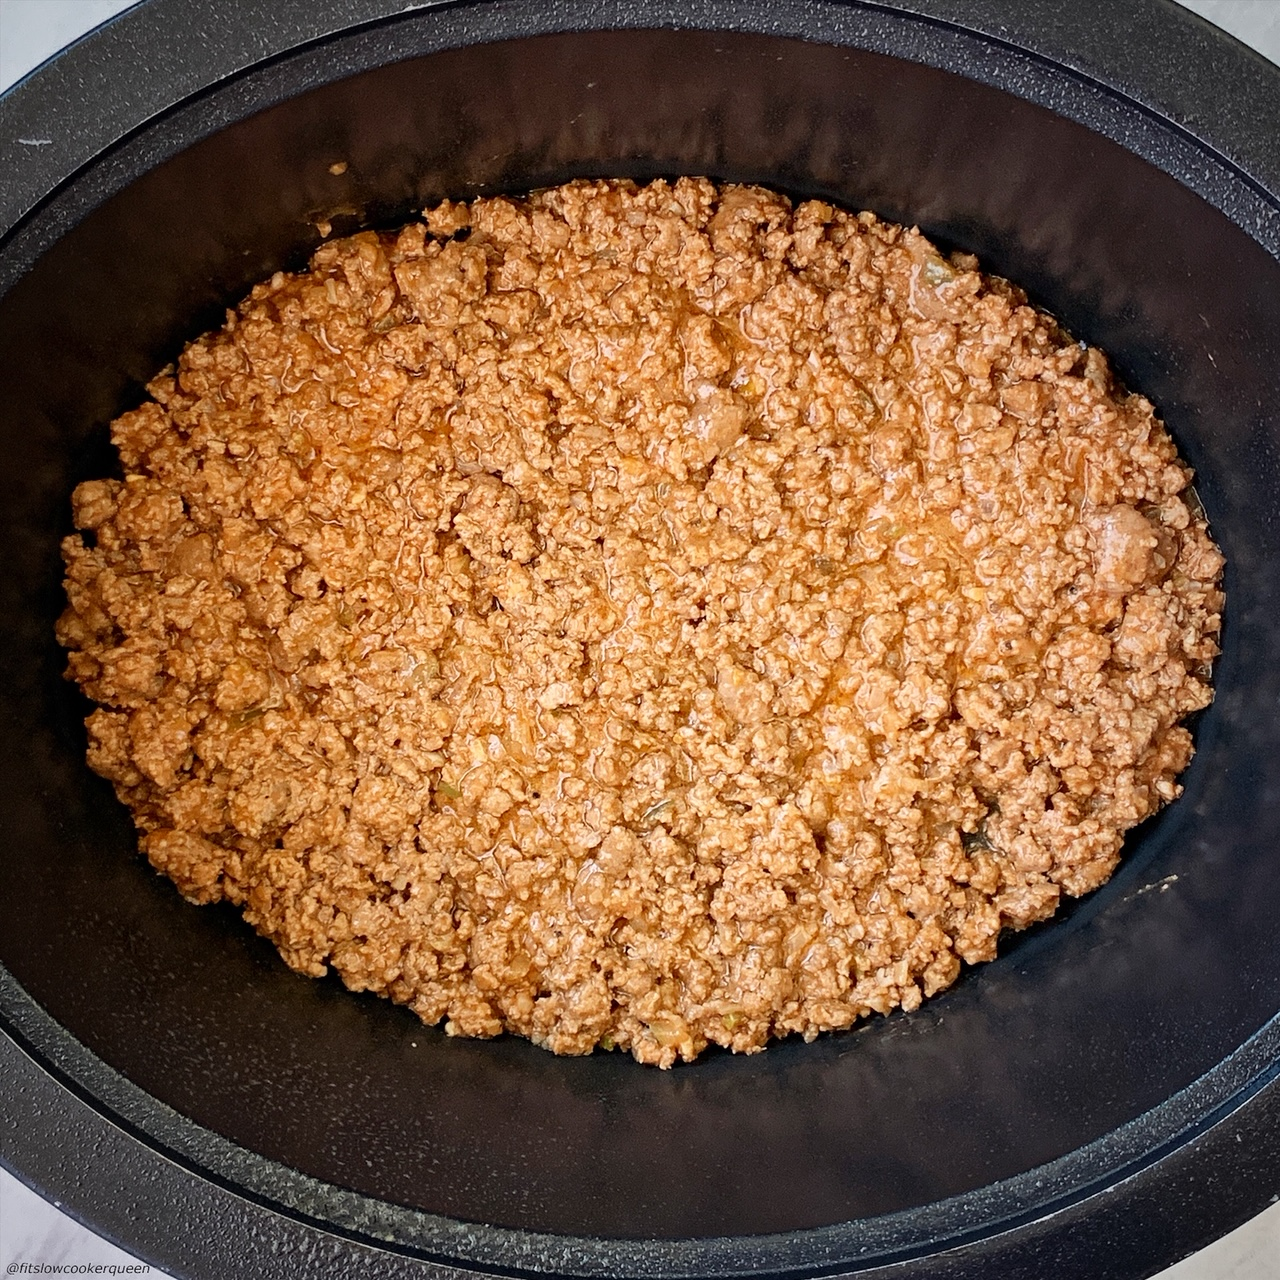 meat mixture for {VIDEO} Slow Cooker Cheeseburger Casserole (Low-Carb) in the slow cooker